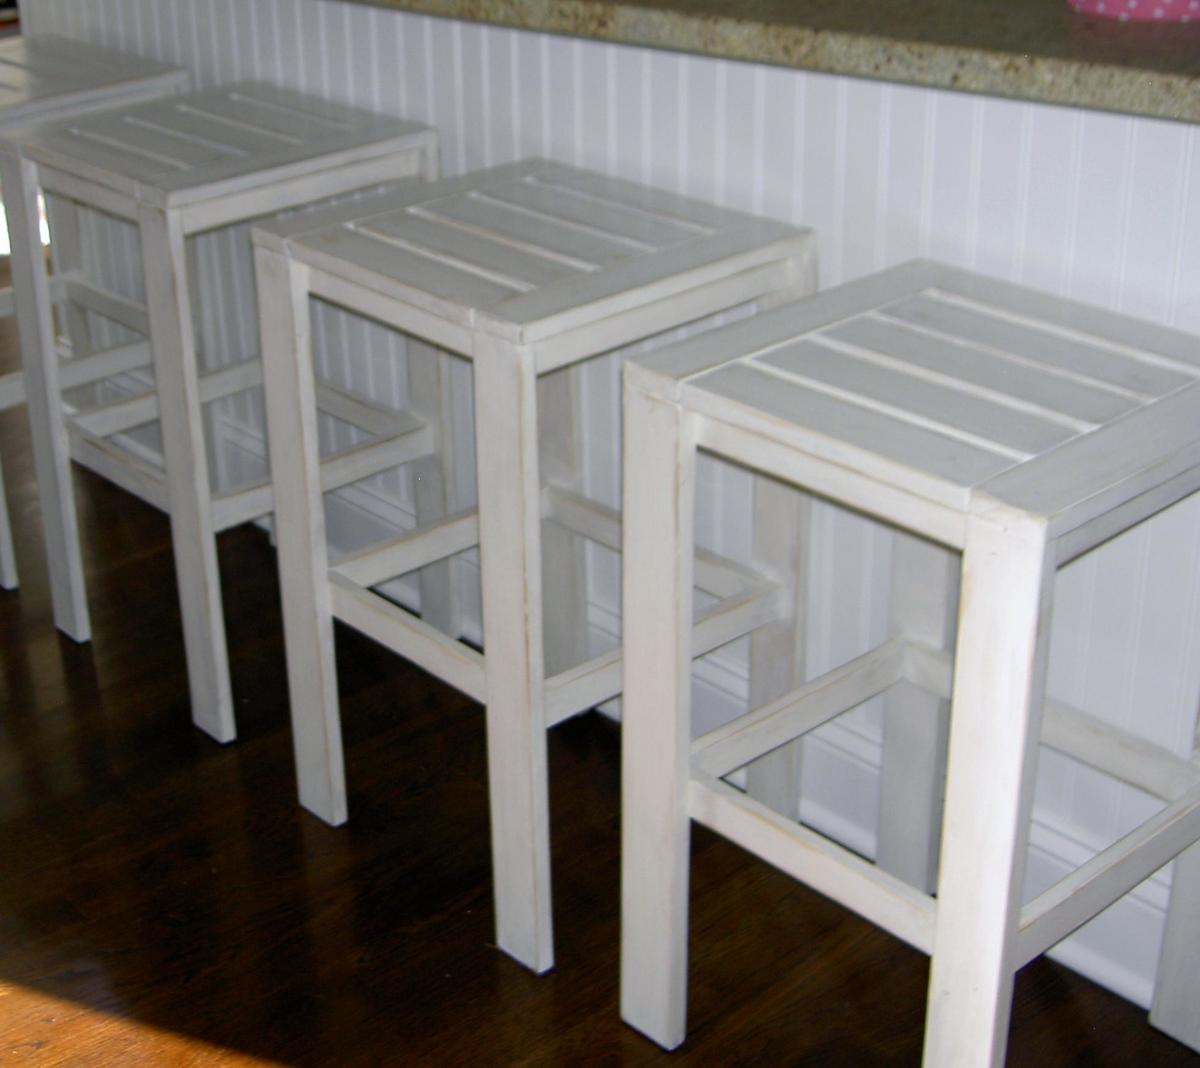 Ana White | Stools for the Bar Table for the Simple Outdoor Collection -  DIY Projects